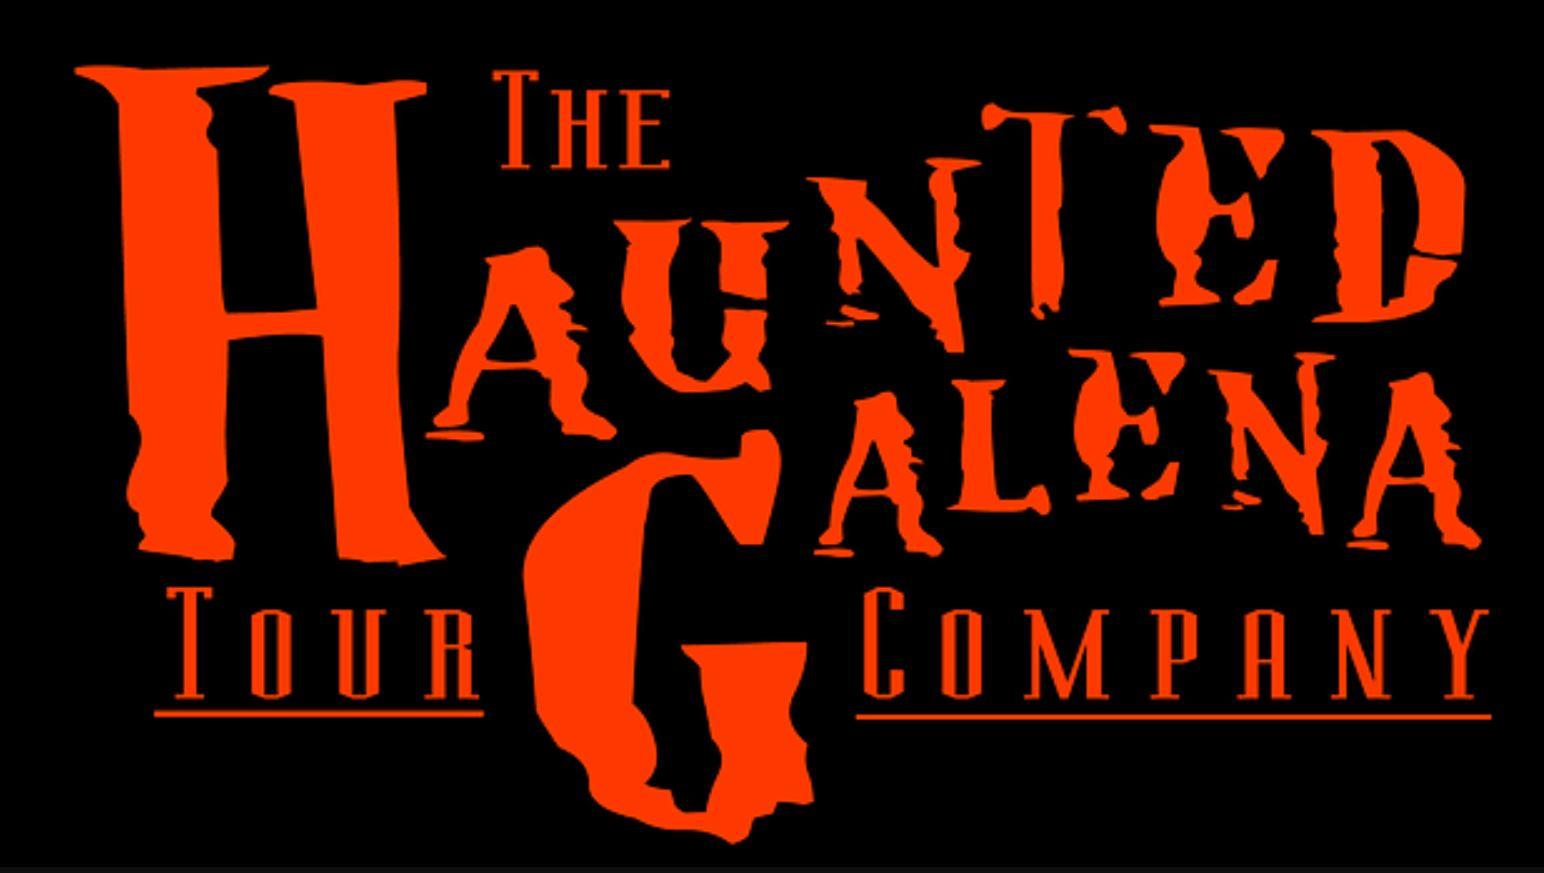 The Haunted Galena Tour Company